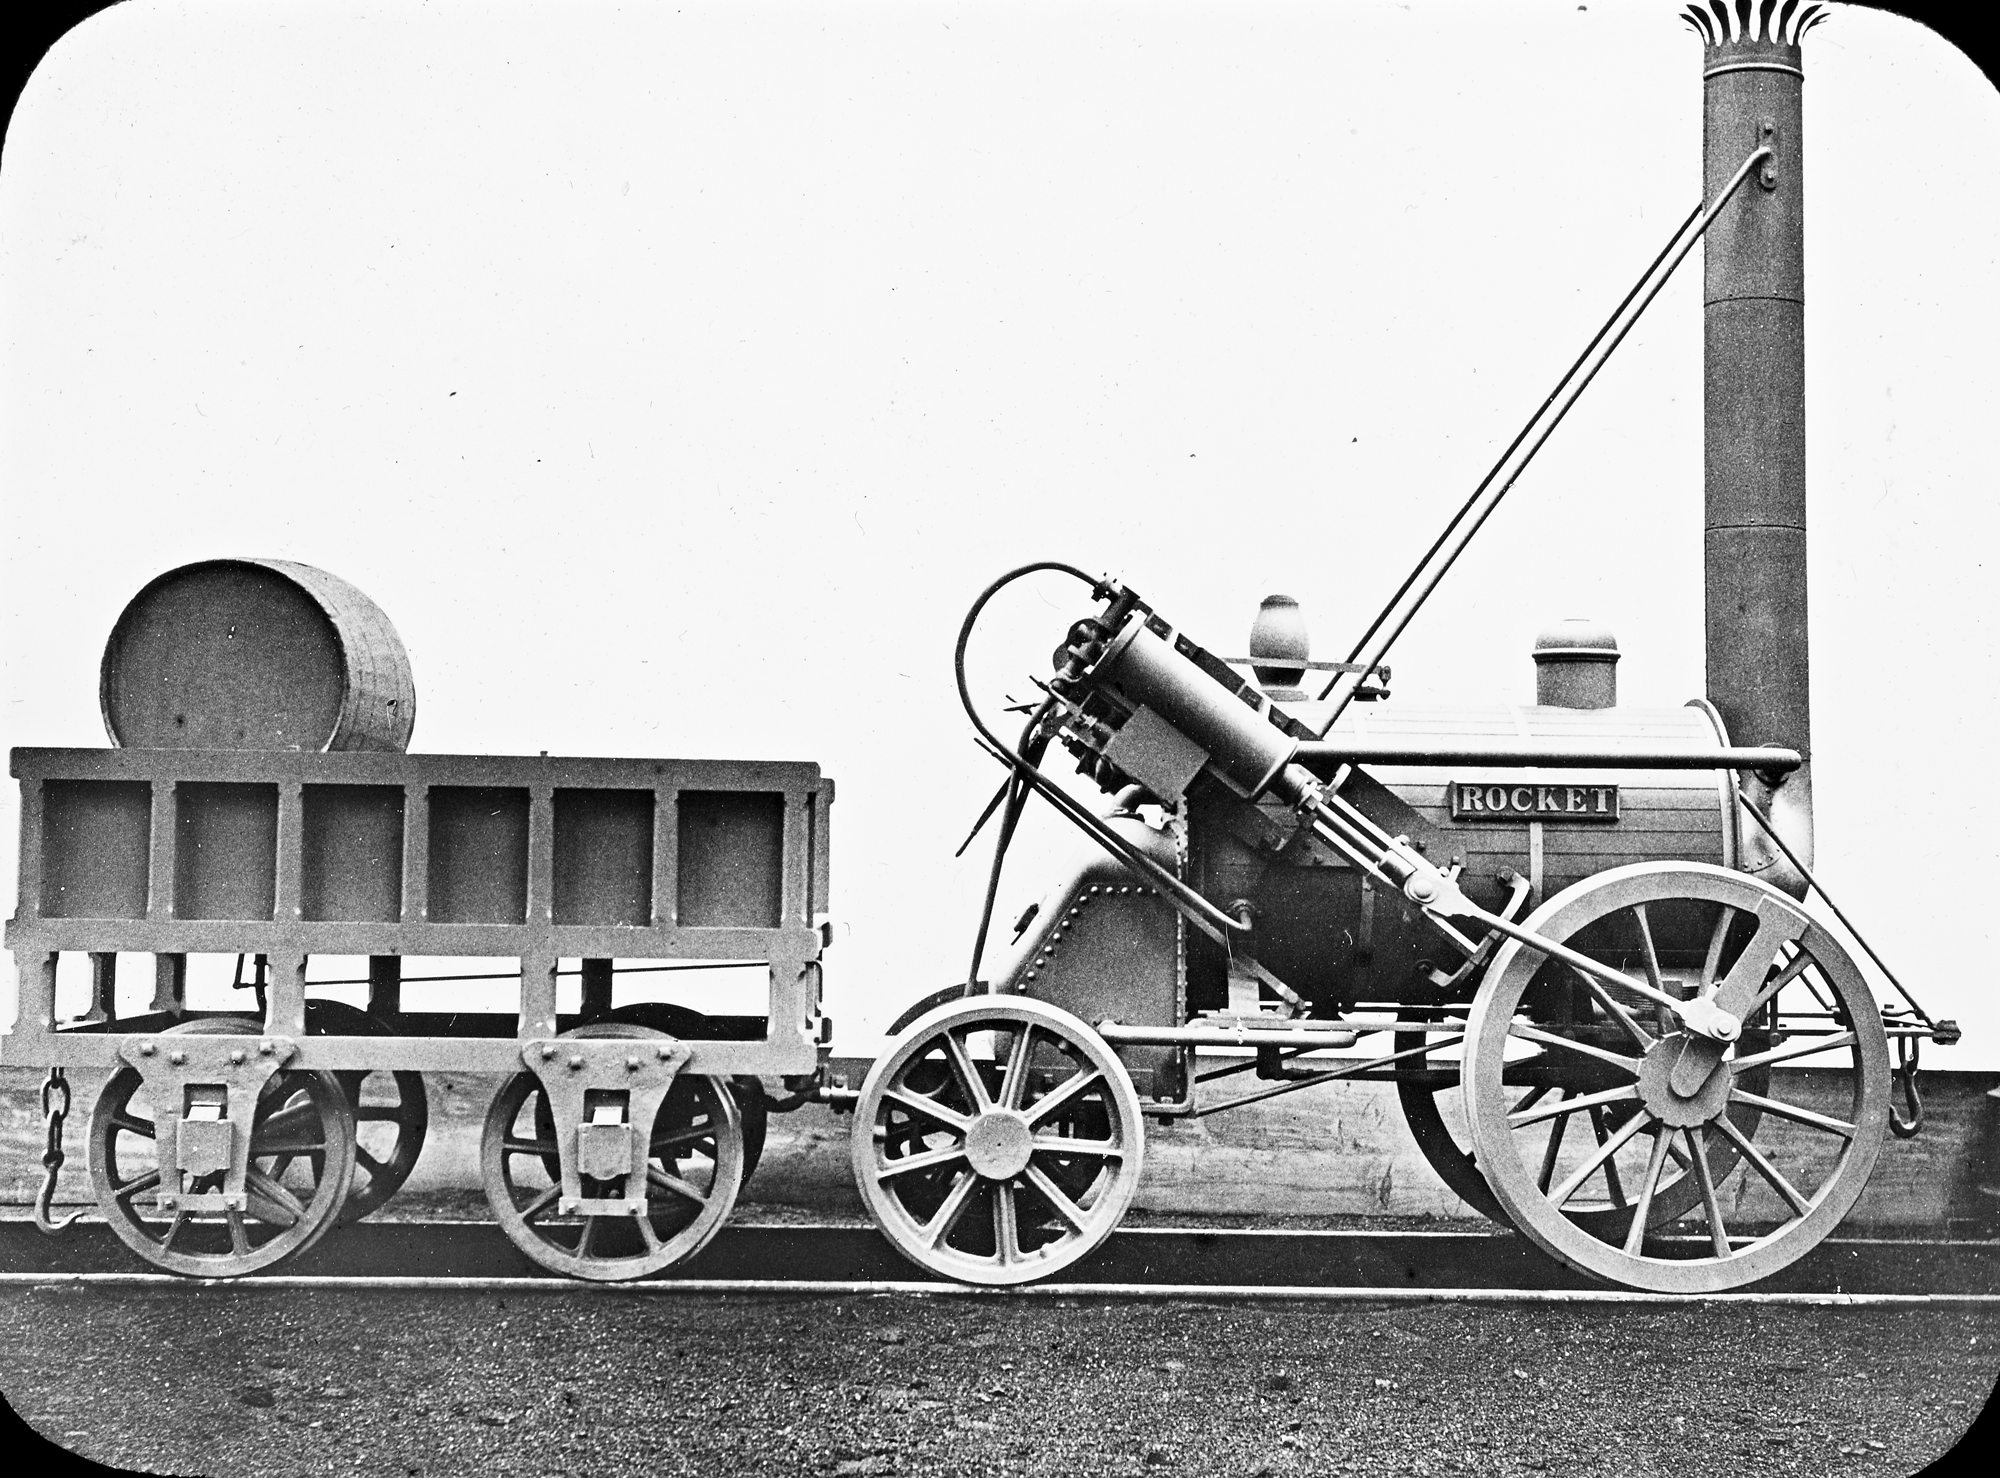 'The Rocket' locomotive engine - Stephenson